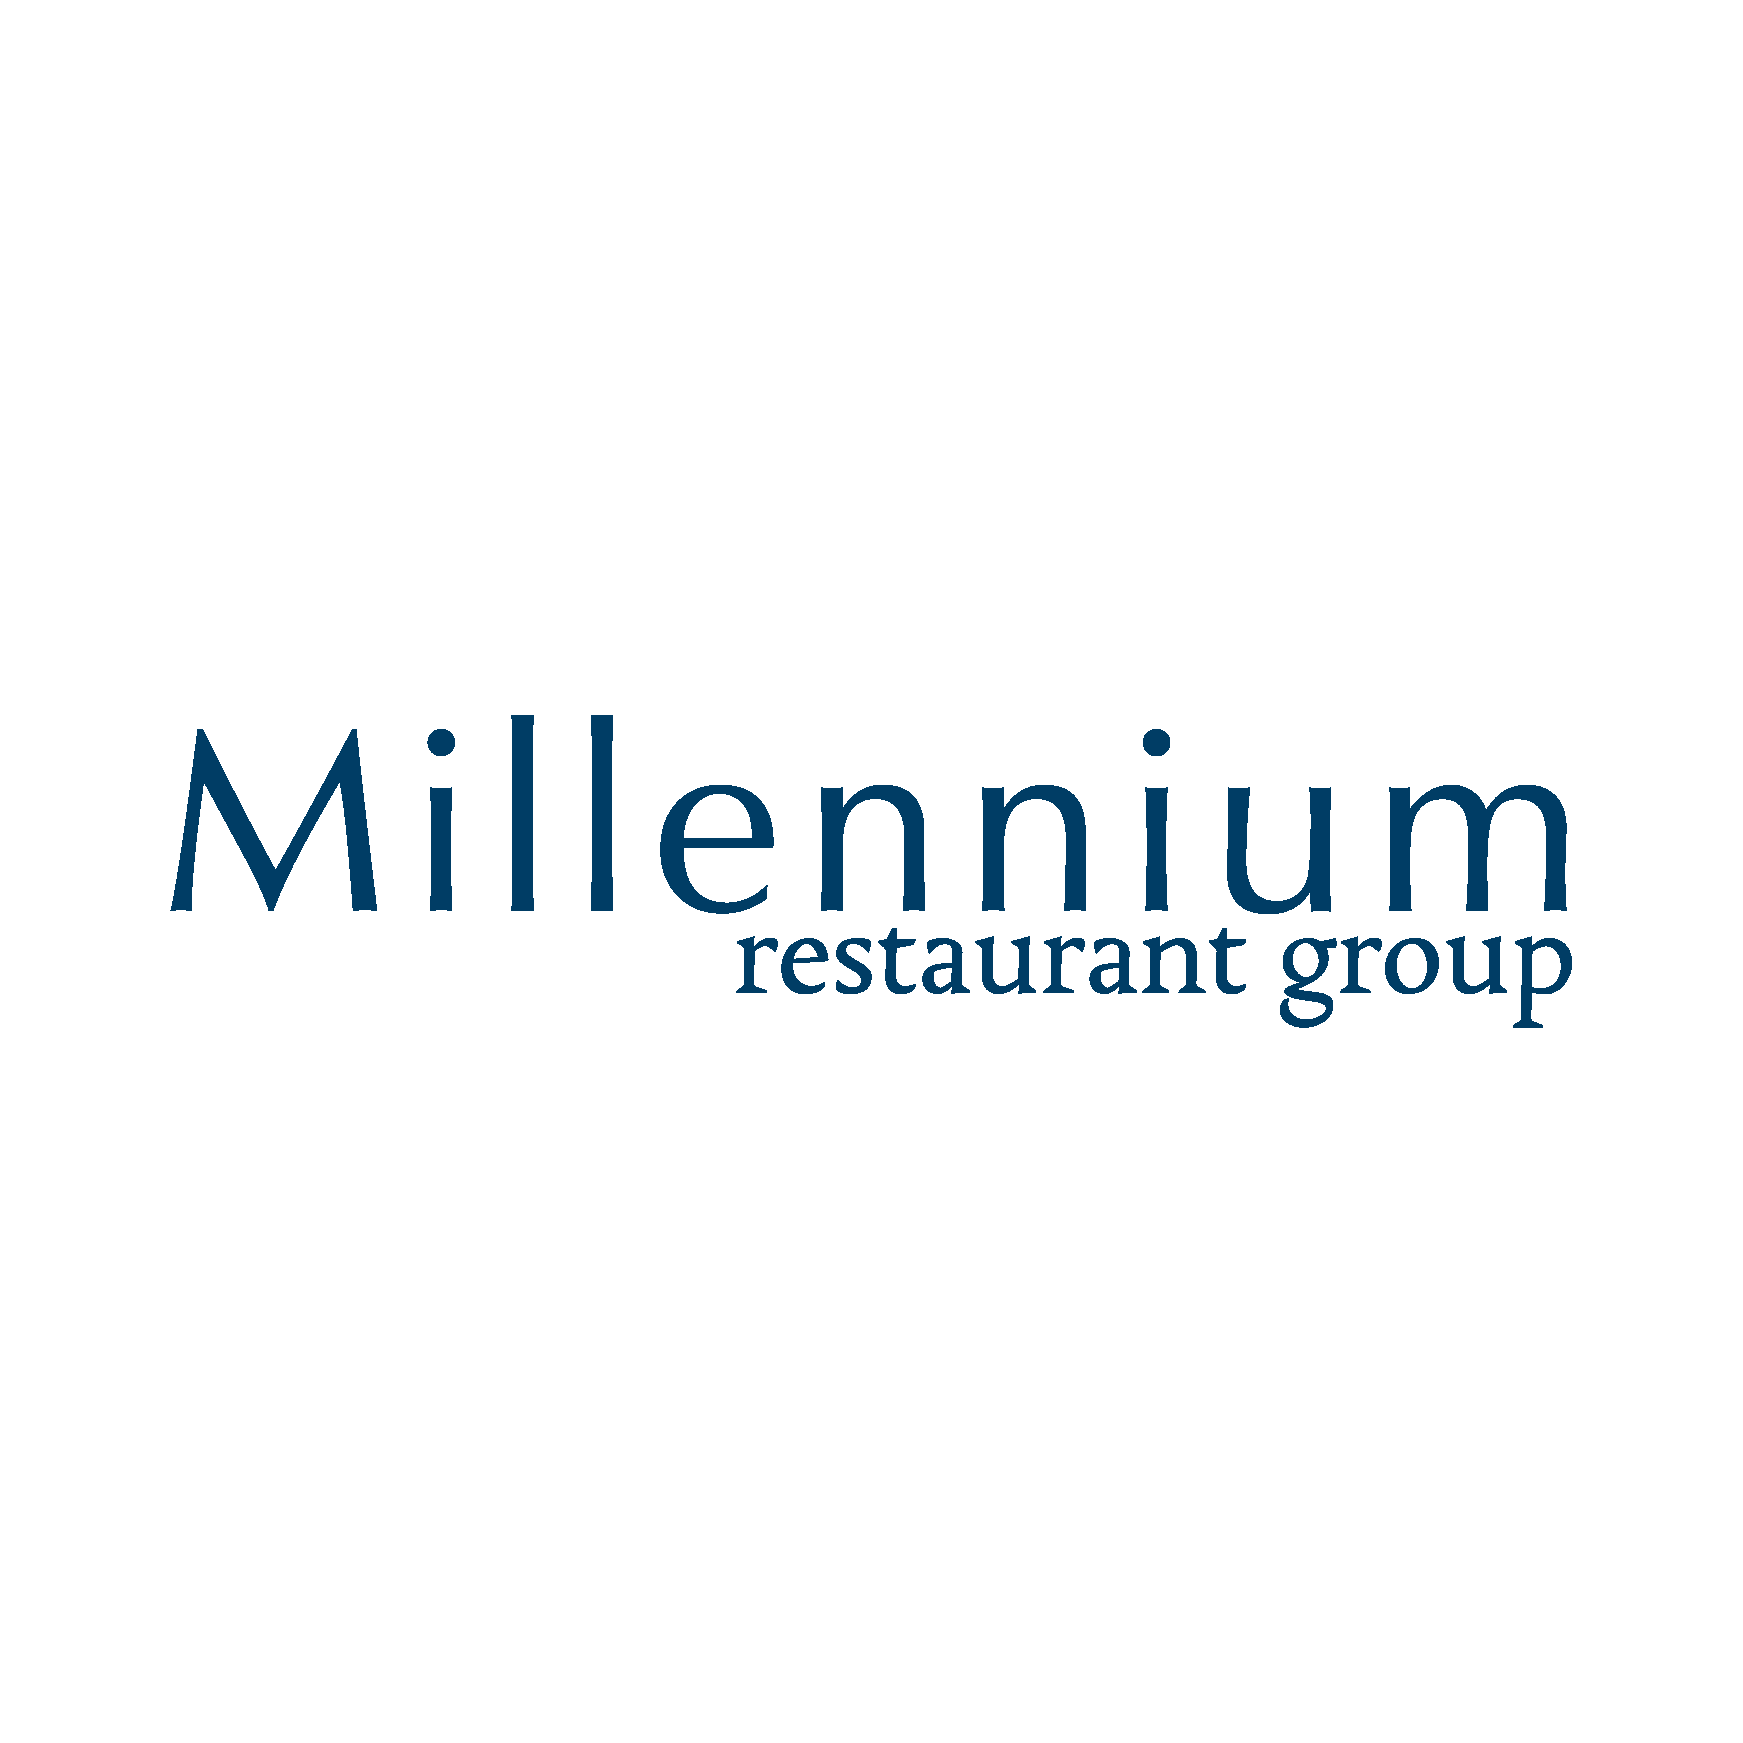 Millennium Restaurant Group Logo